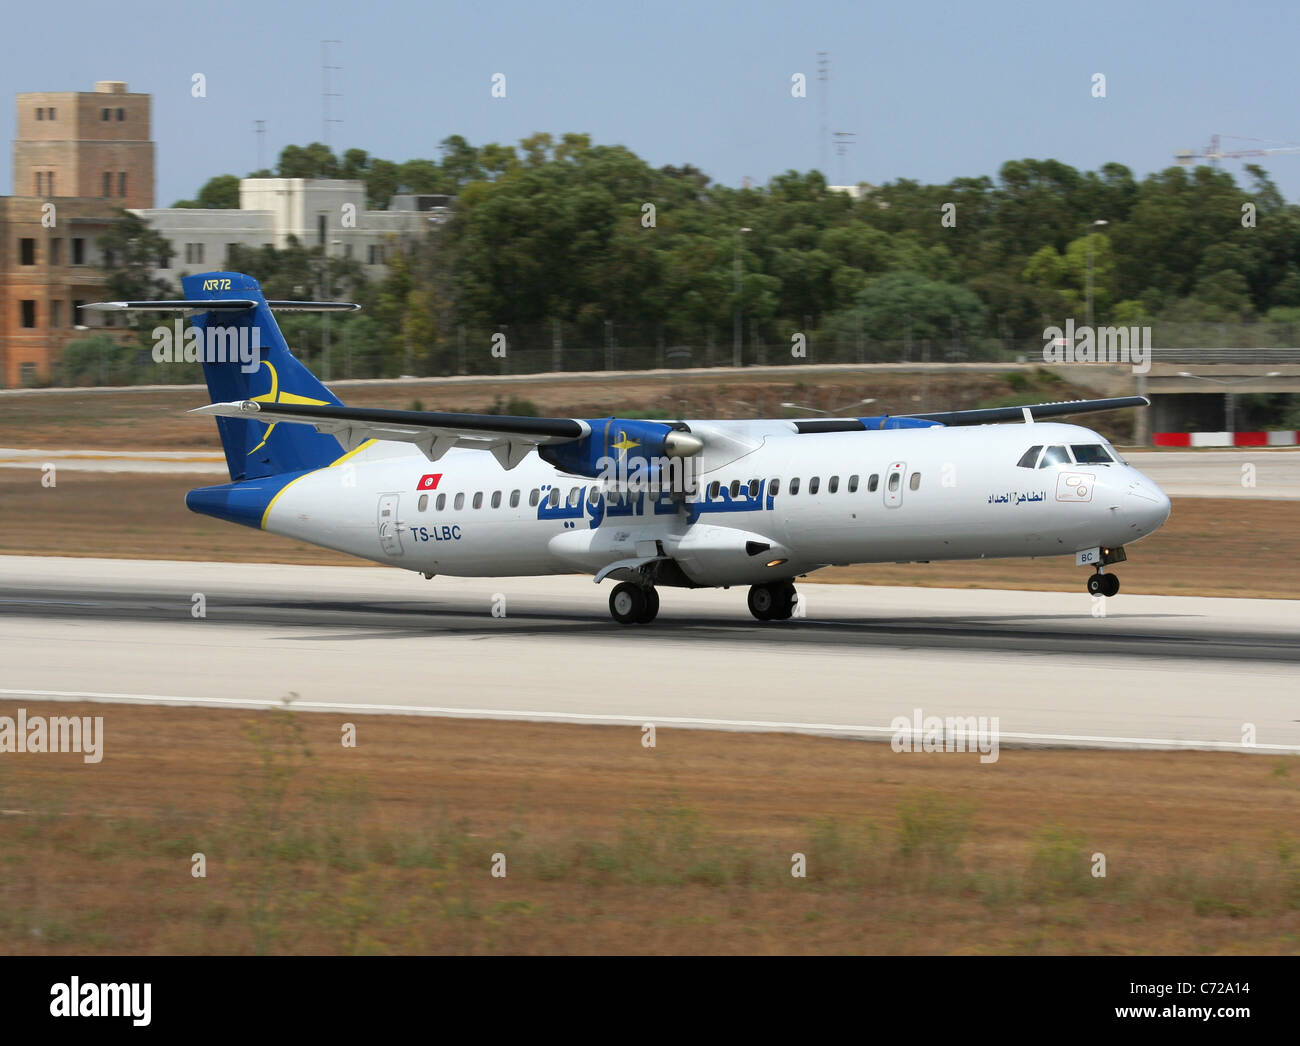 Tuninter ATR 72 short haul turboprop airliner taking off from Malta - Stock Image